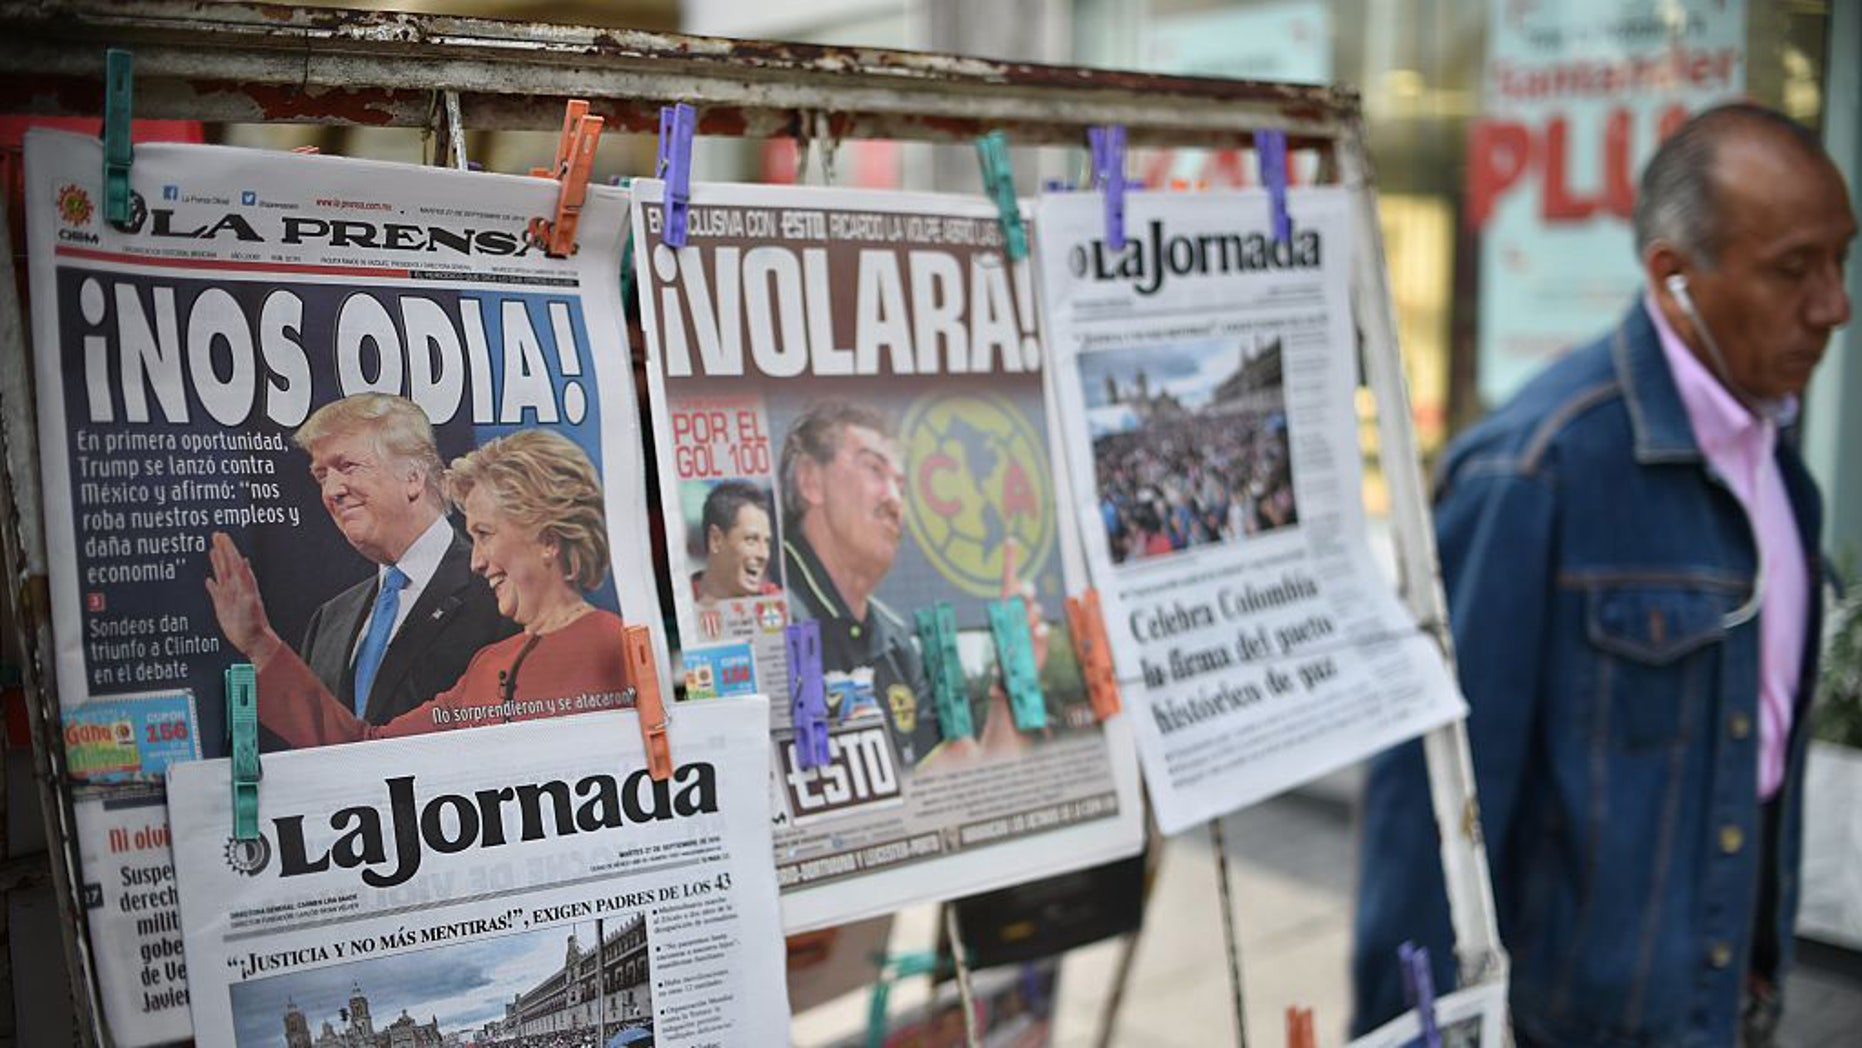 A man walks by a newsstand displaying front pages showing images of US presidential candidates debate and Colombia's peace agreement, in Mexico City on September 27, 2016. (Photo credit: YURI CORTEZ/AFP/Getty Images)